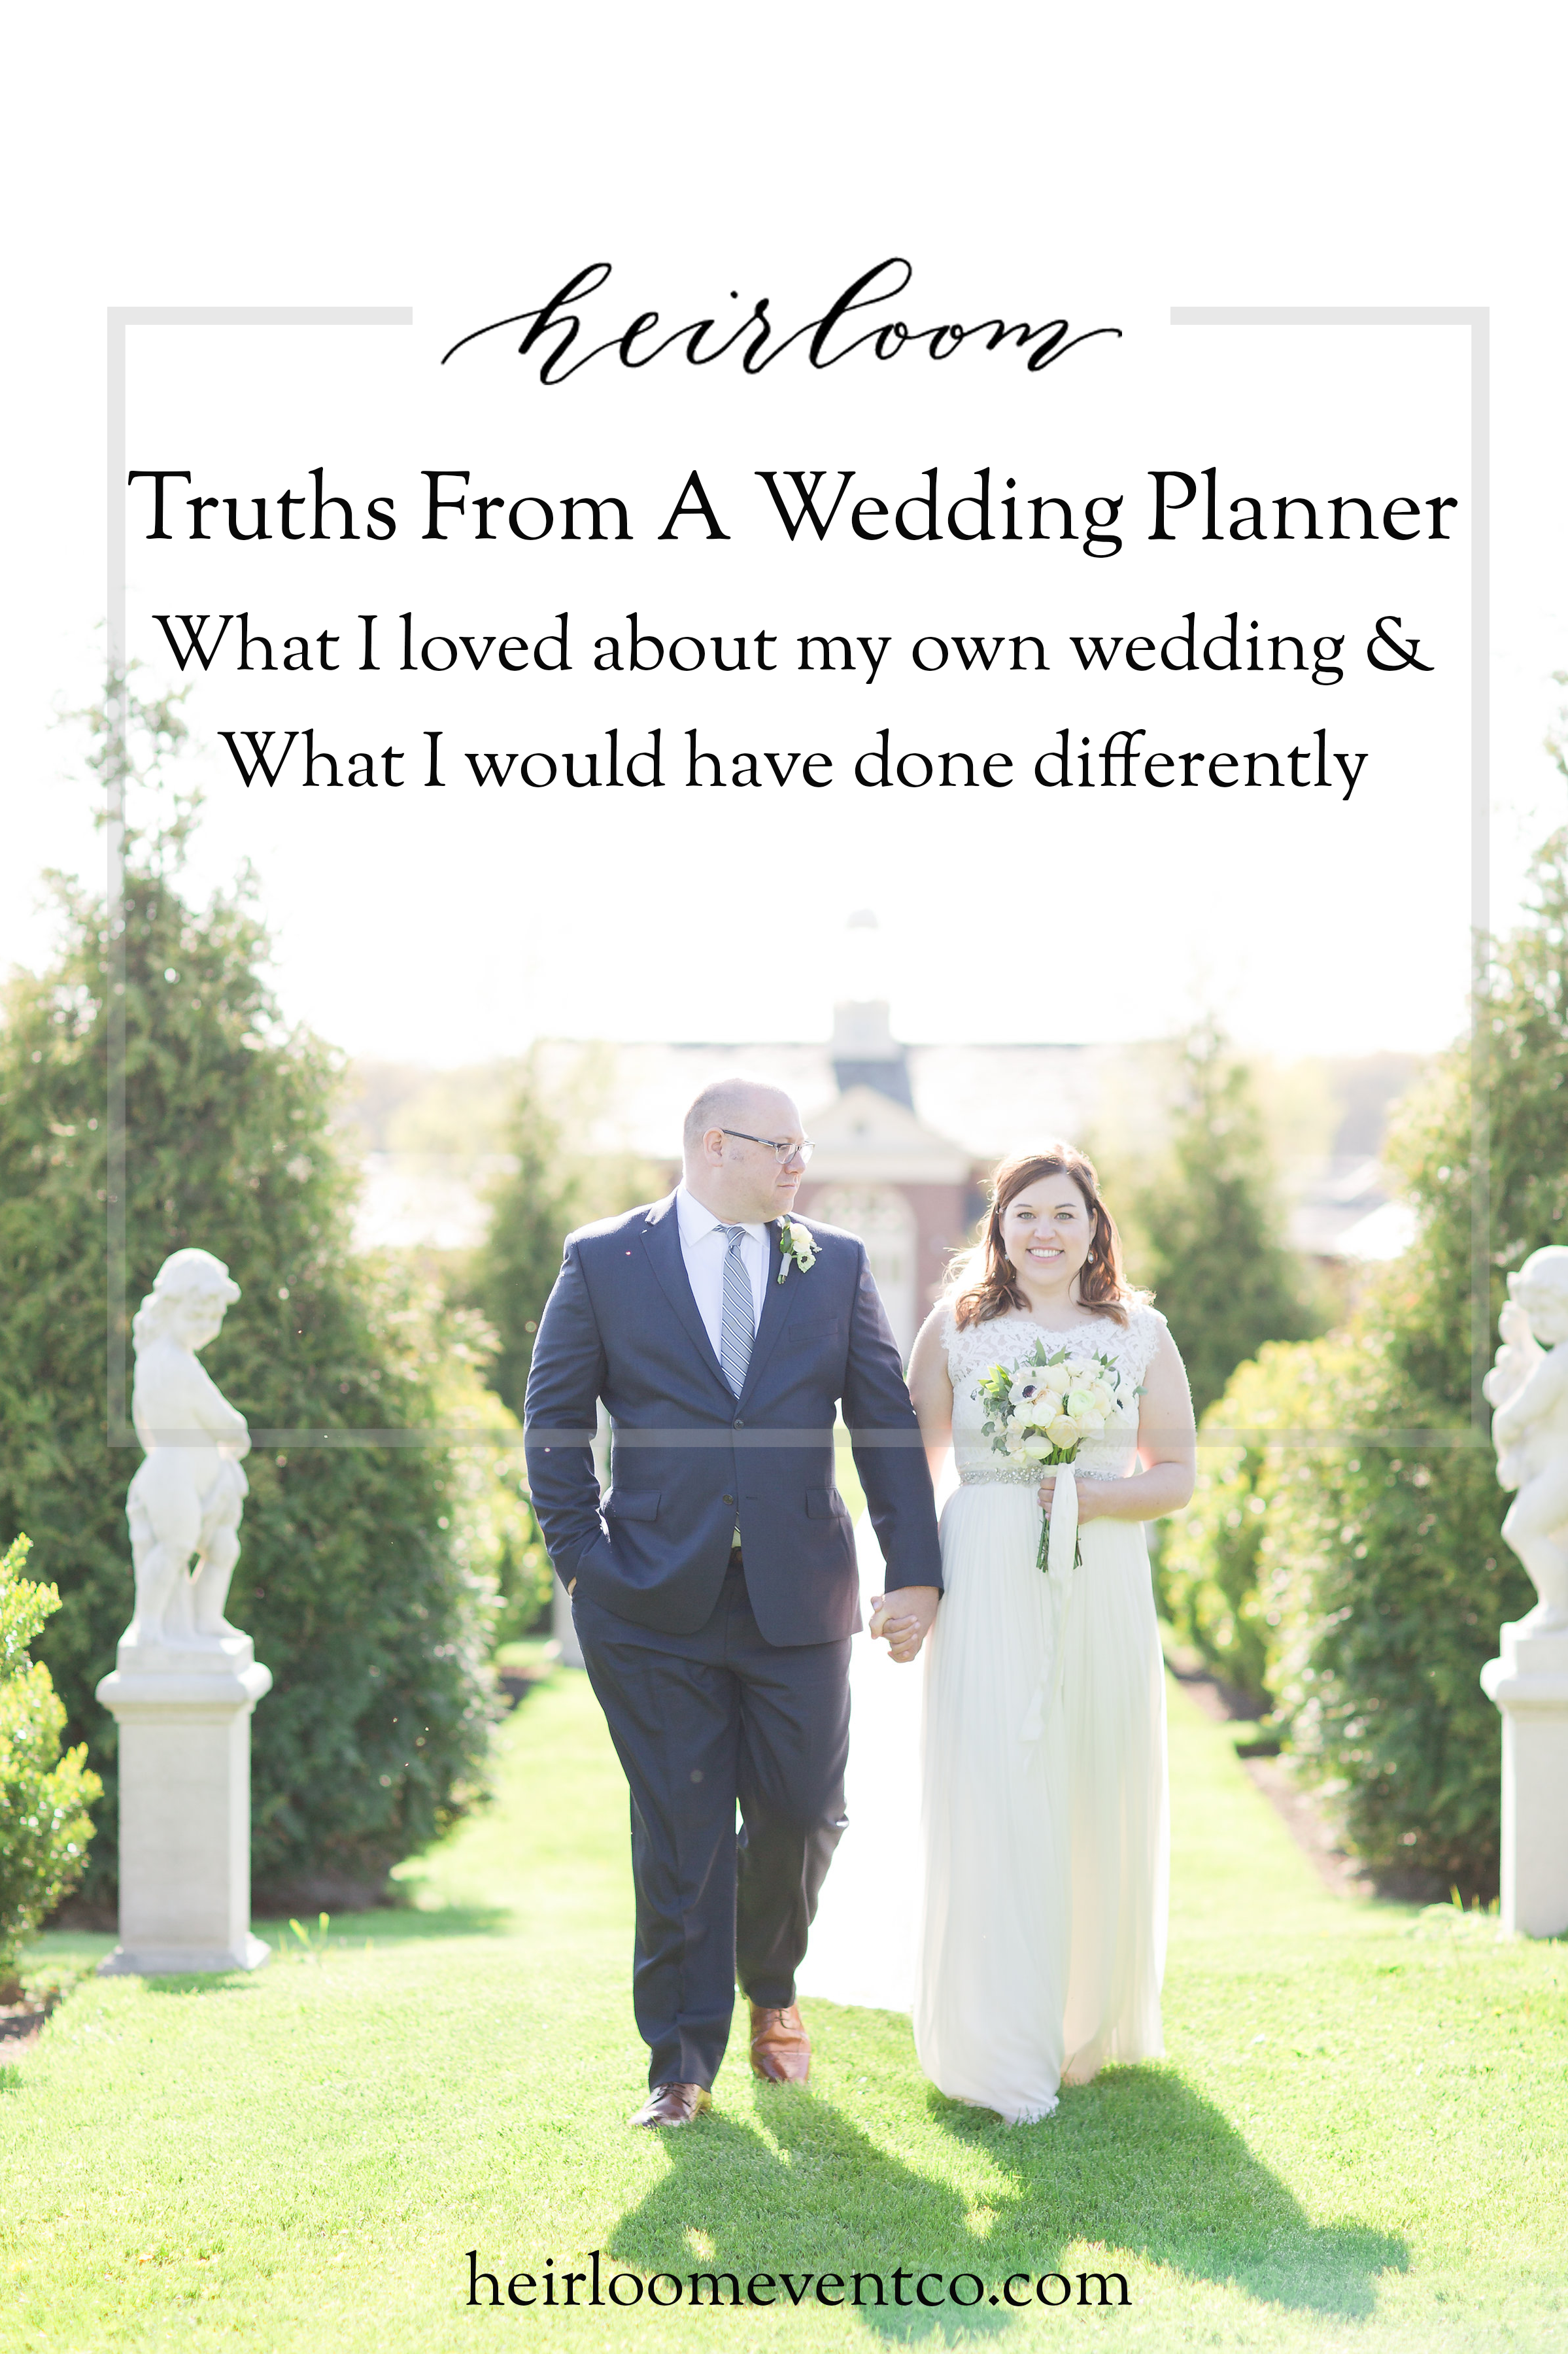 Heirloom Event Co. | Truths From A Wedding Planner